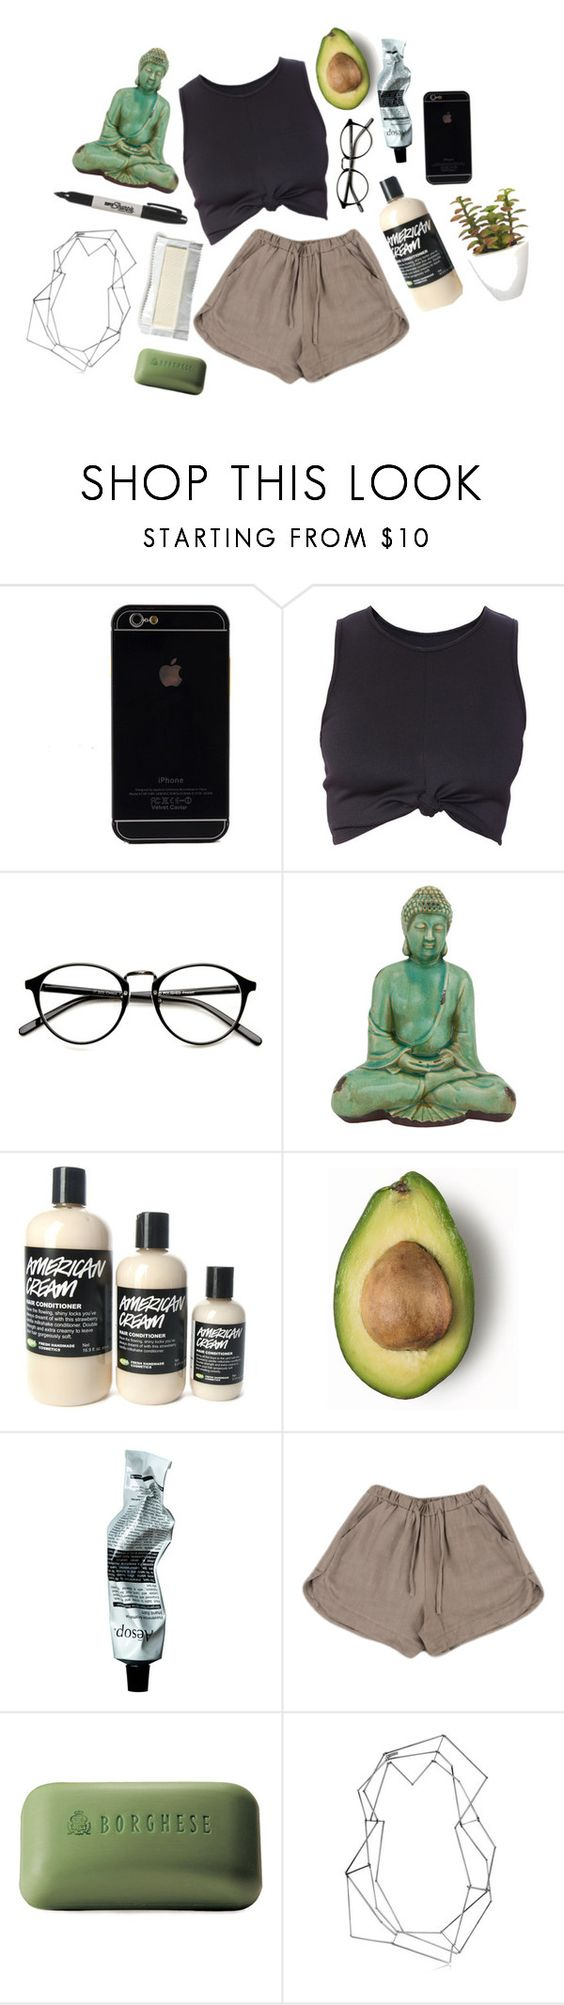 """Exposed sunlight"" by avocadokiddo ❤ liked on Polyvore featuring Sharpie, Aesop, Borghese, BANCI GIOIELLI, Pomax, Summer, indie and artsy"